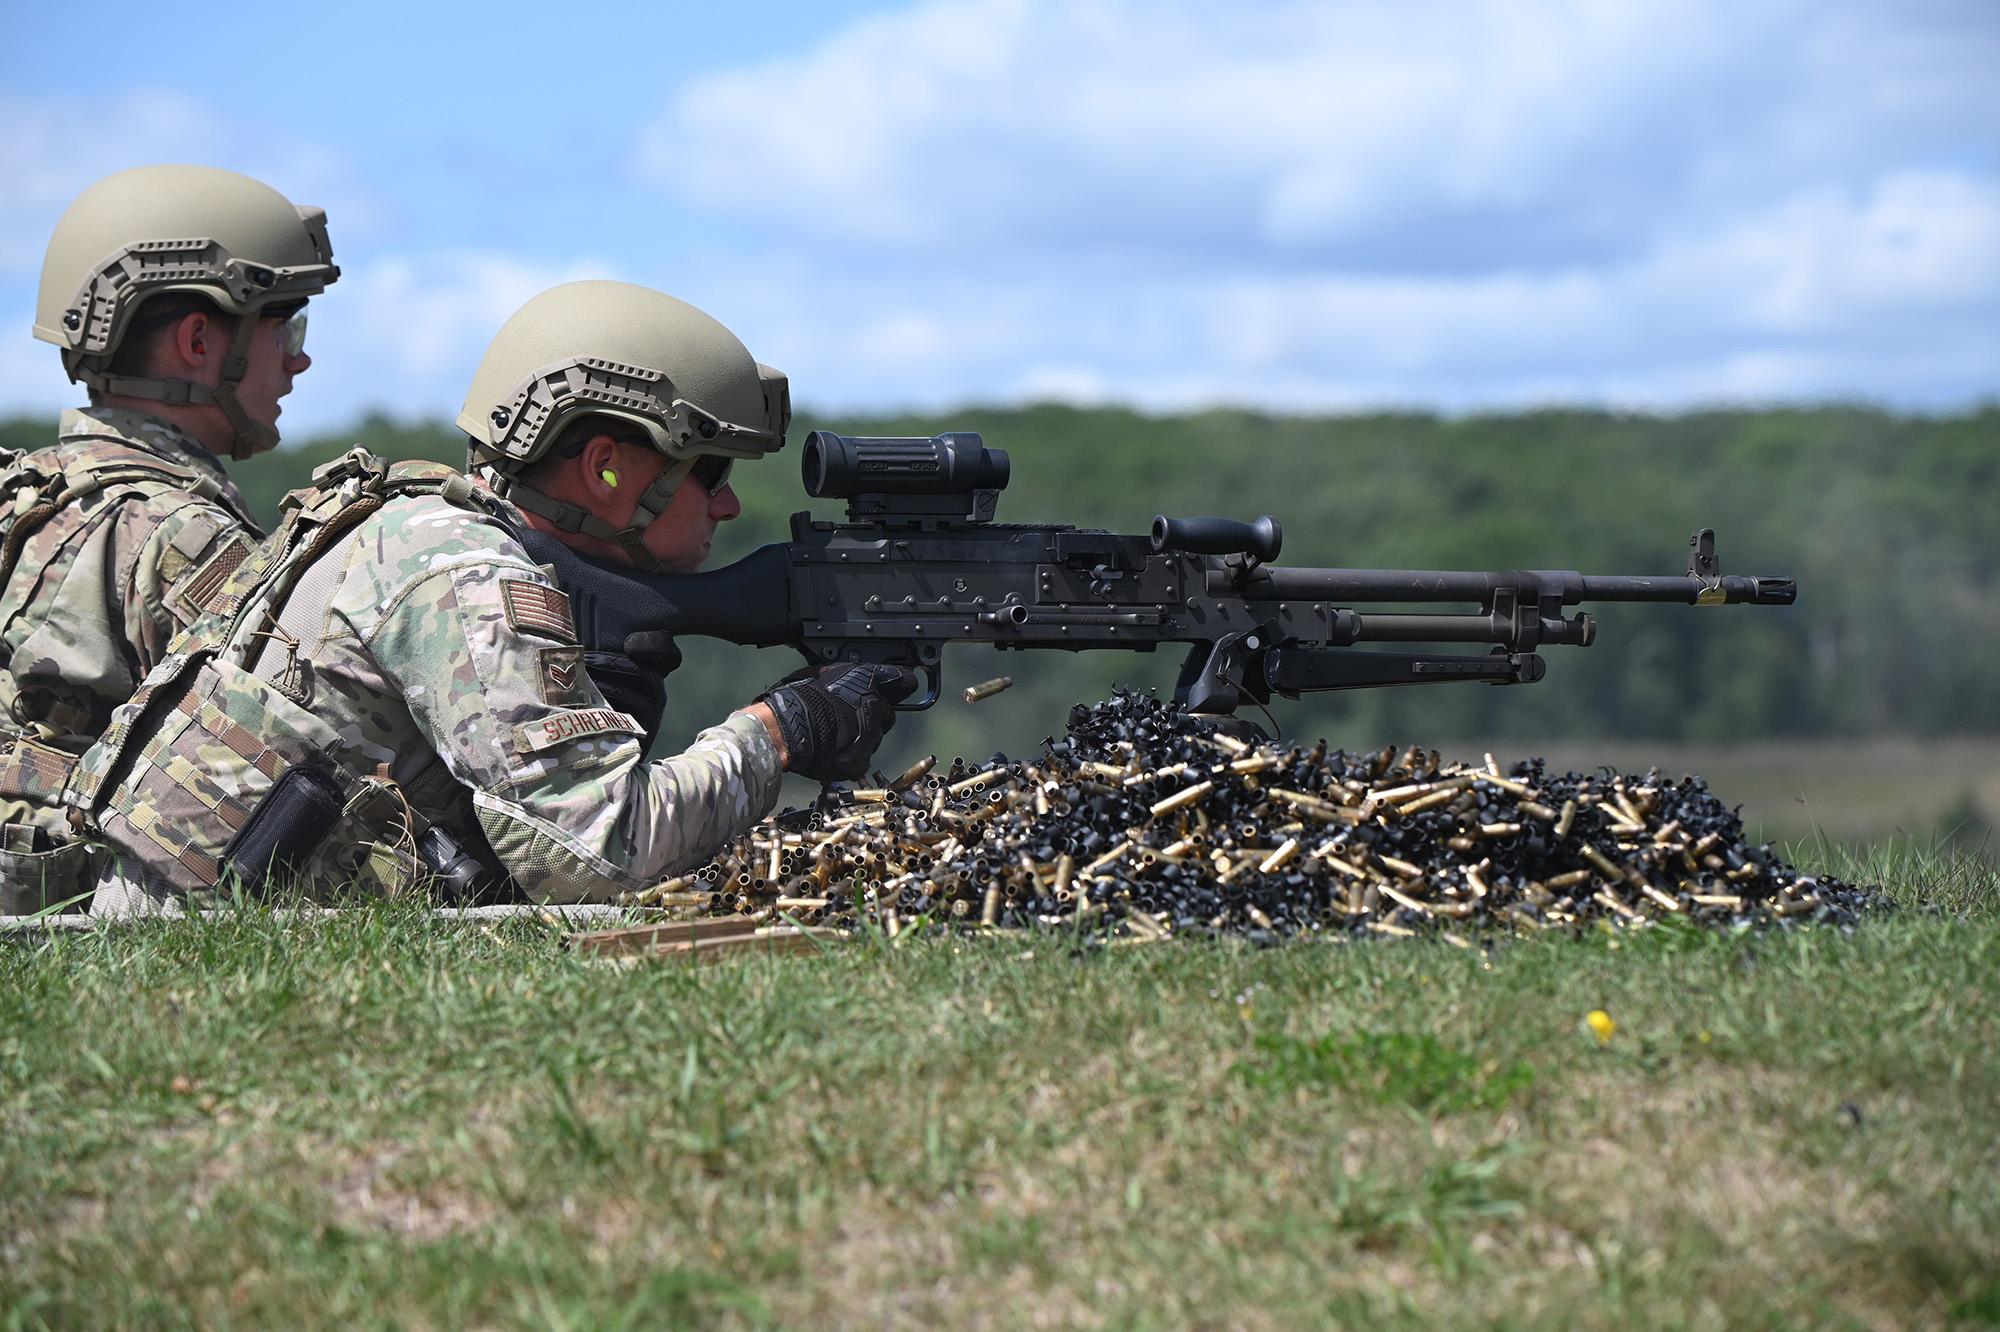 Senior Airman Brian Schreiner, 119th Security Forces Squadron, fires an M240 machine gun at firing-range targets at Camp Ripley Training Center, Minn., Aug. 3, 2020. (Chief Master Sgt. David H. Lipp/Air National Guard)